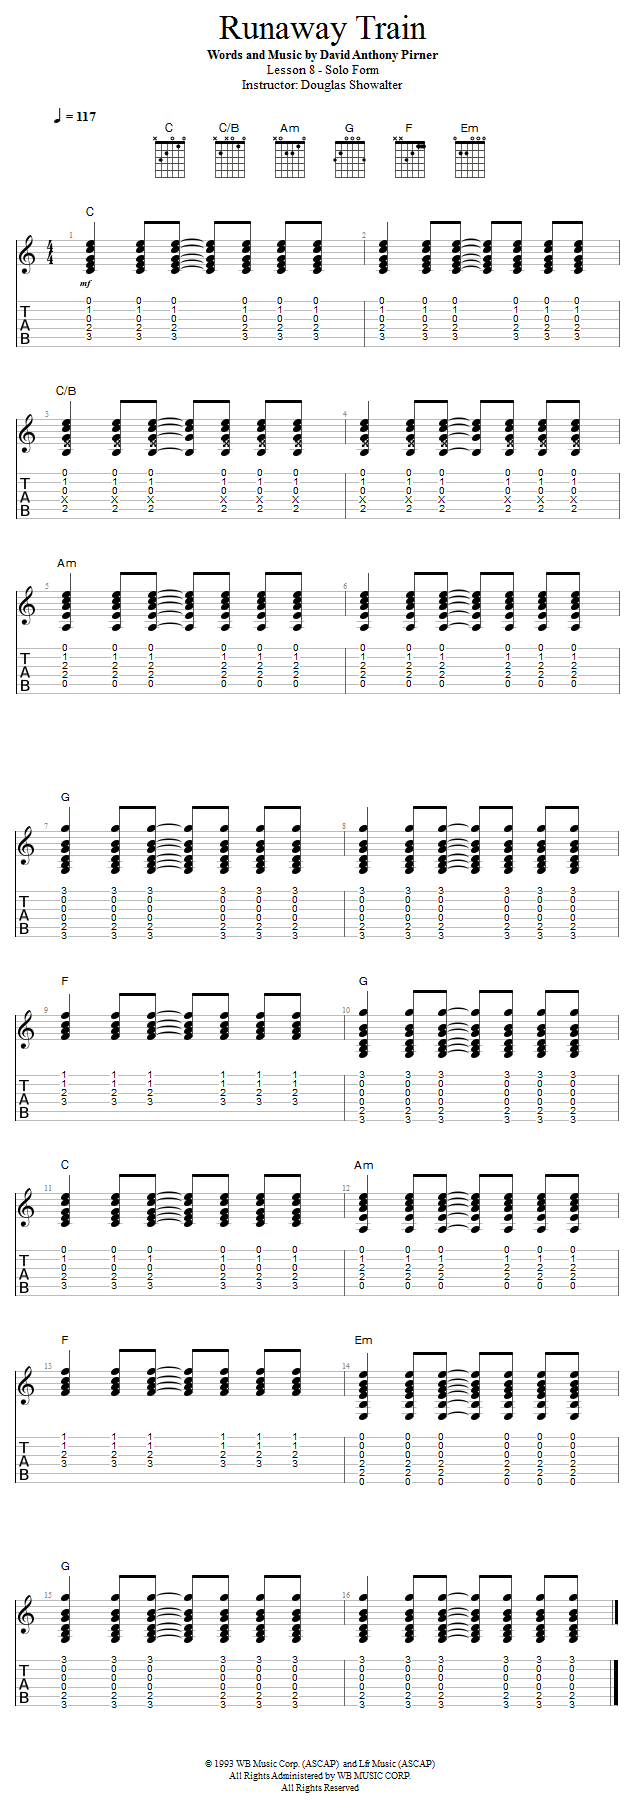 Guitar Lessons Runaway Train Solo Form